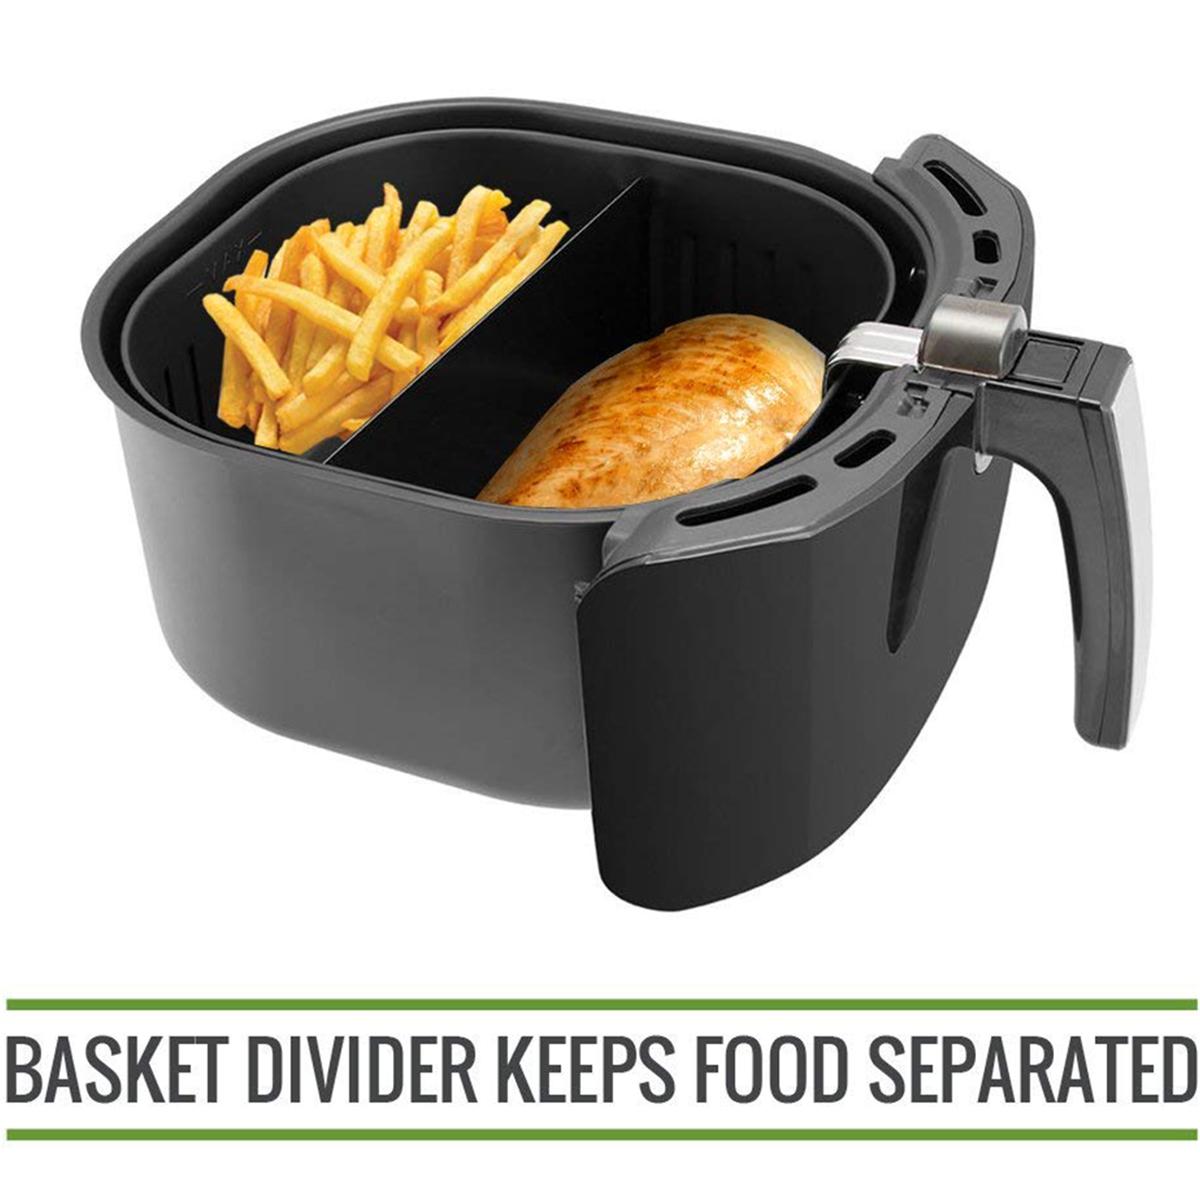 XL Air Fryer Cooking Divider Compatible with 9 inch Air Fryer Baskets Air Fryer Basket Divider Keeps Food SeparatedXL Air Fryer Cooking Divider Compatible with 9 inch Air Fryer Baskets Air Fryer Basket Divider Keeps Food Separated